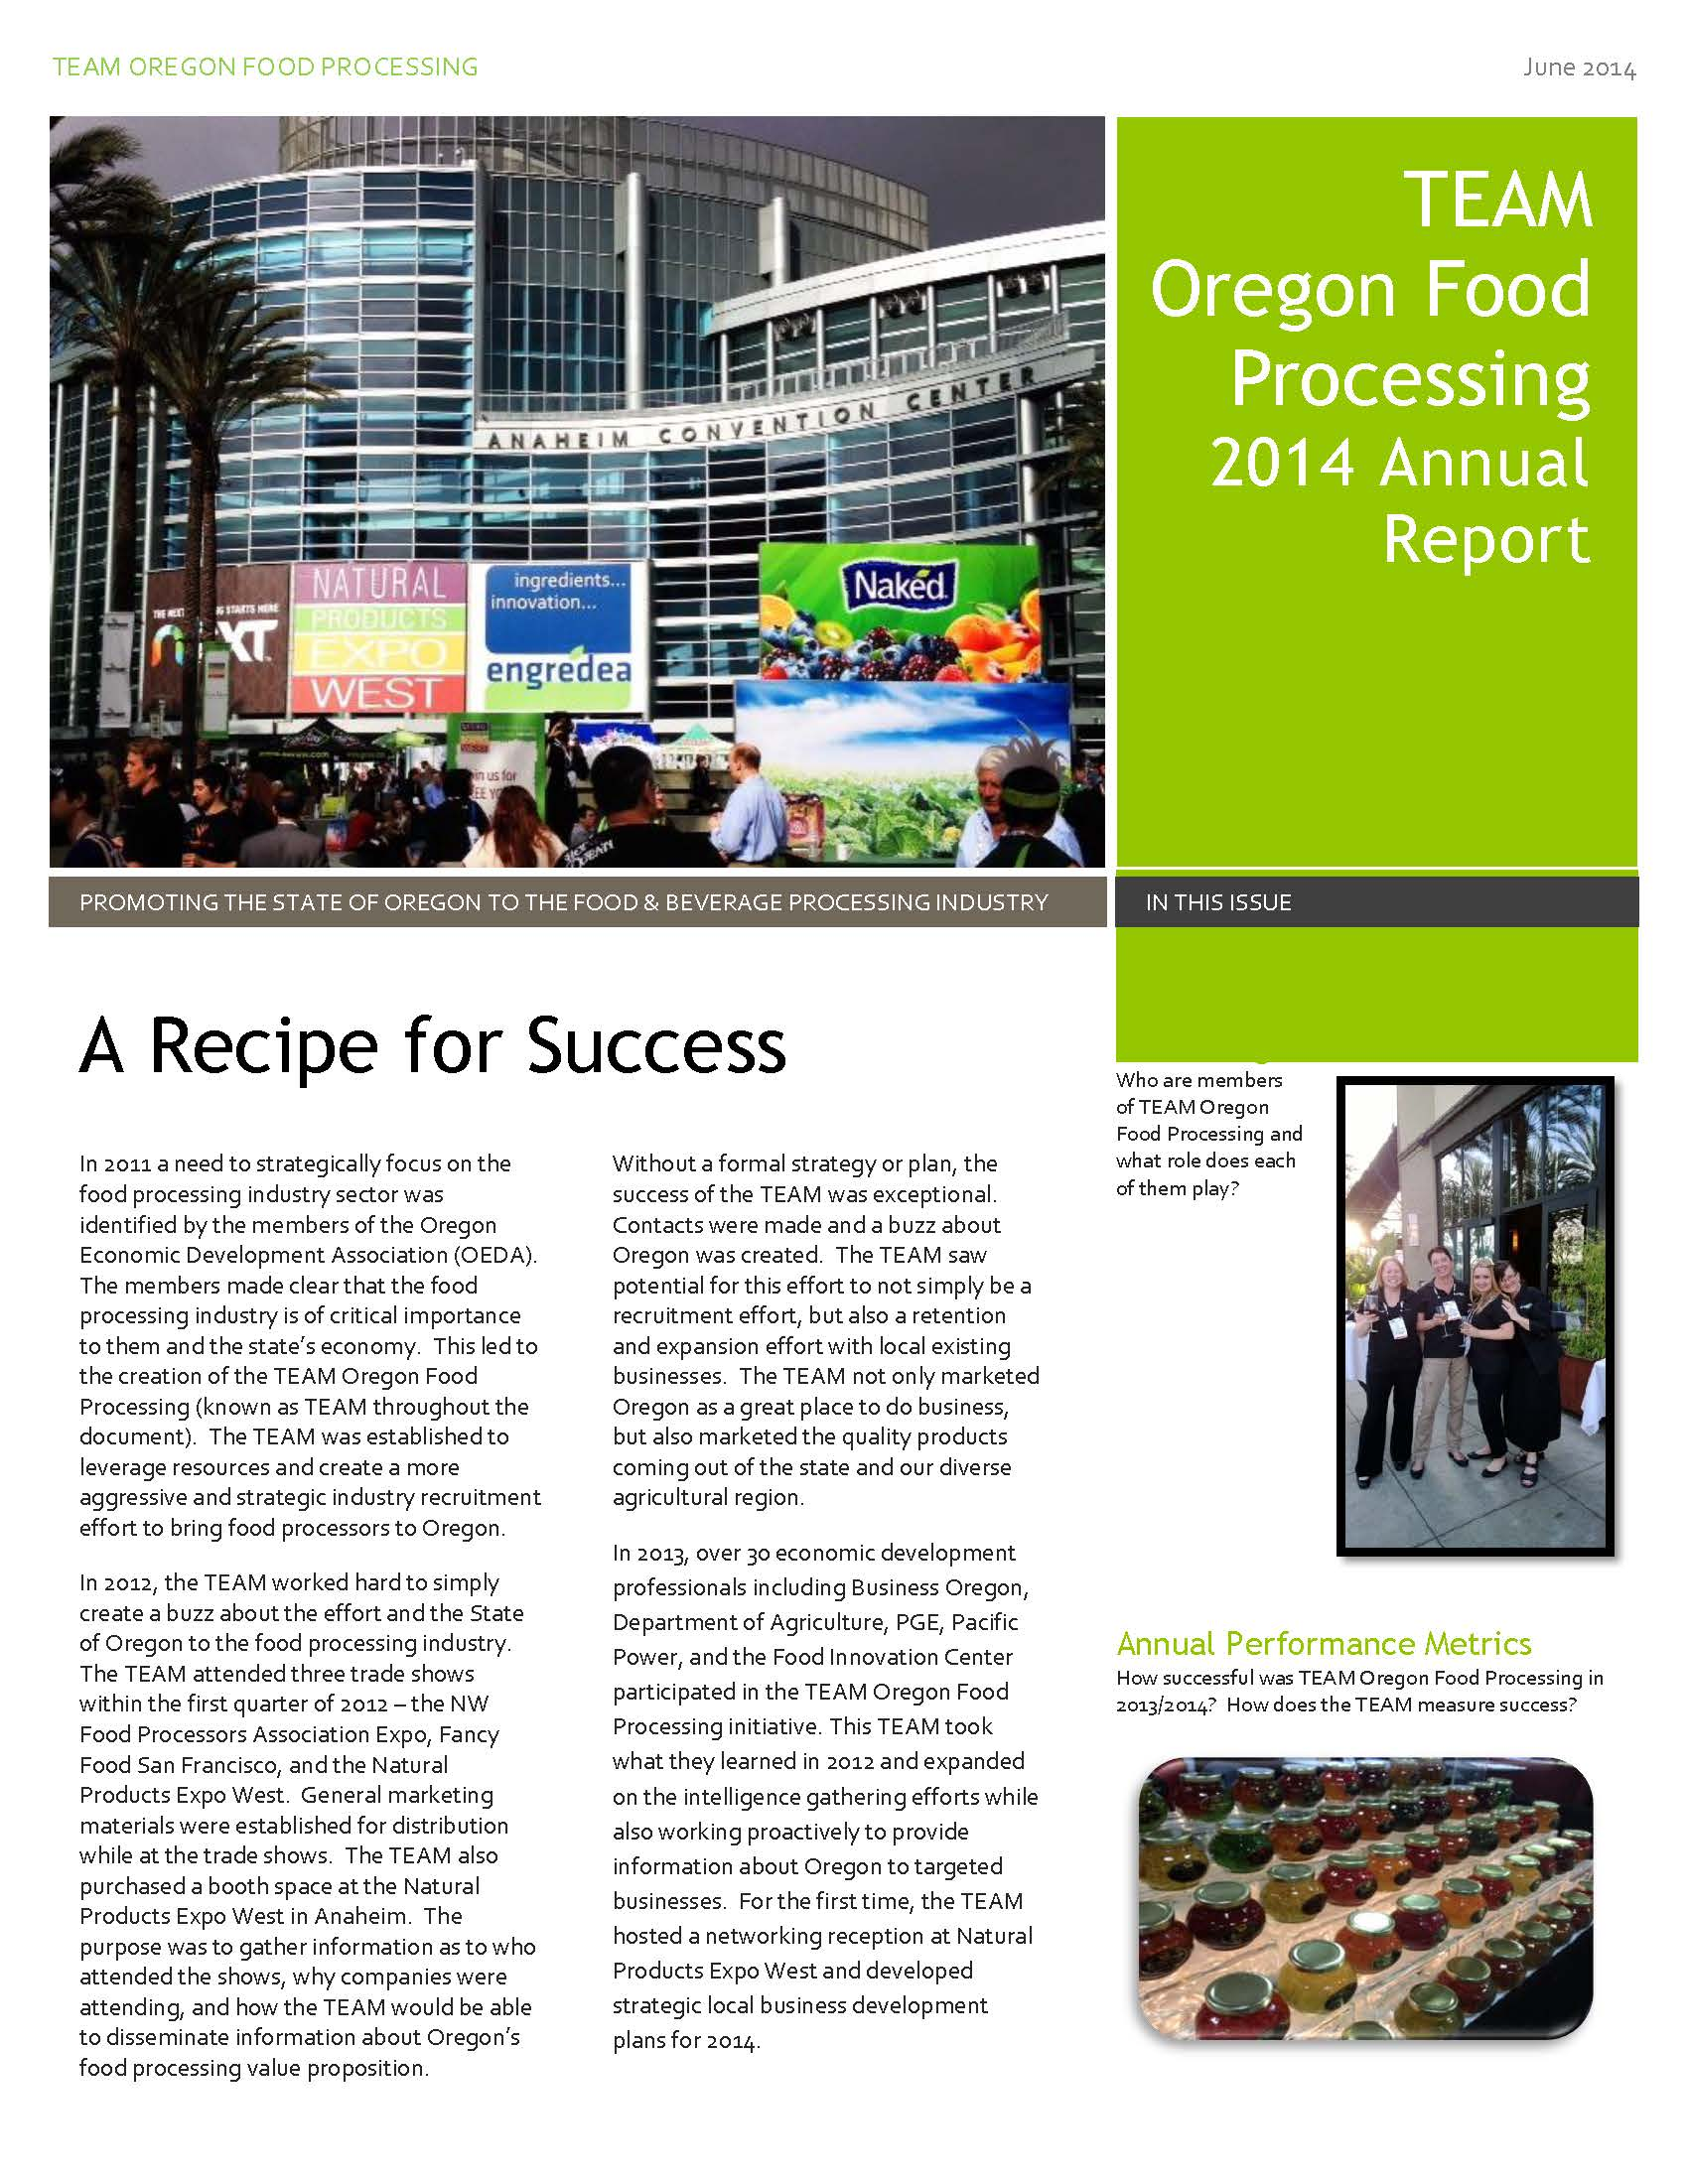 TEAM 2014 Annual Report FINAL_Page_1